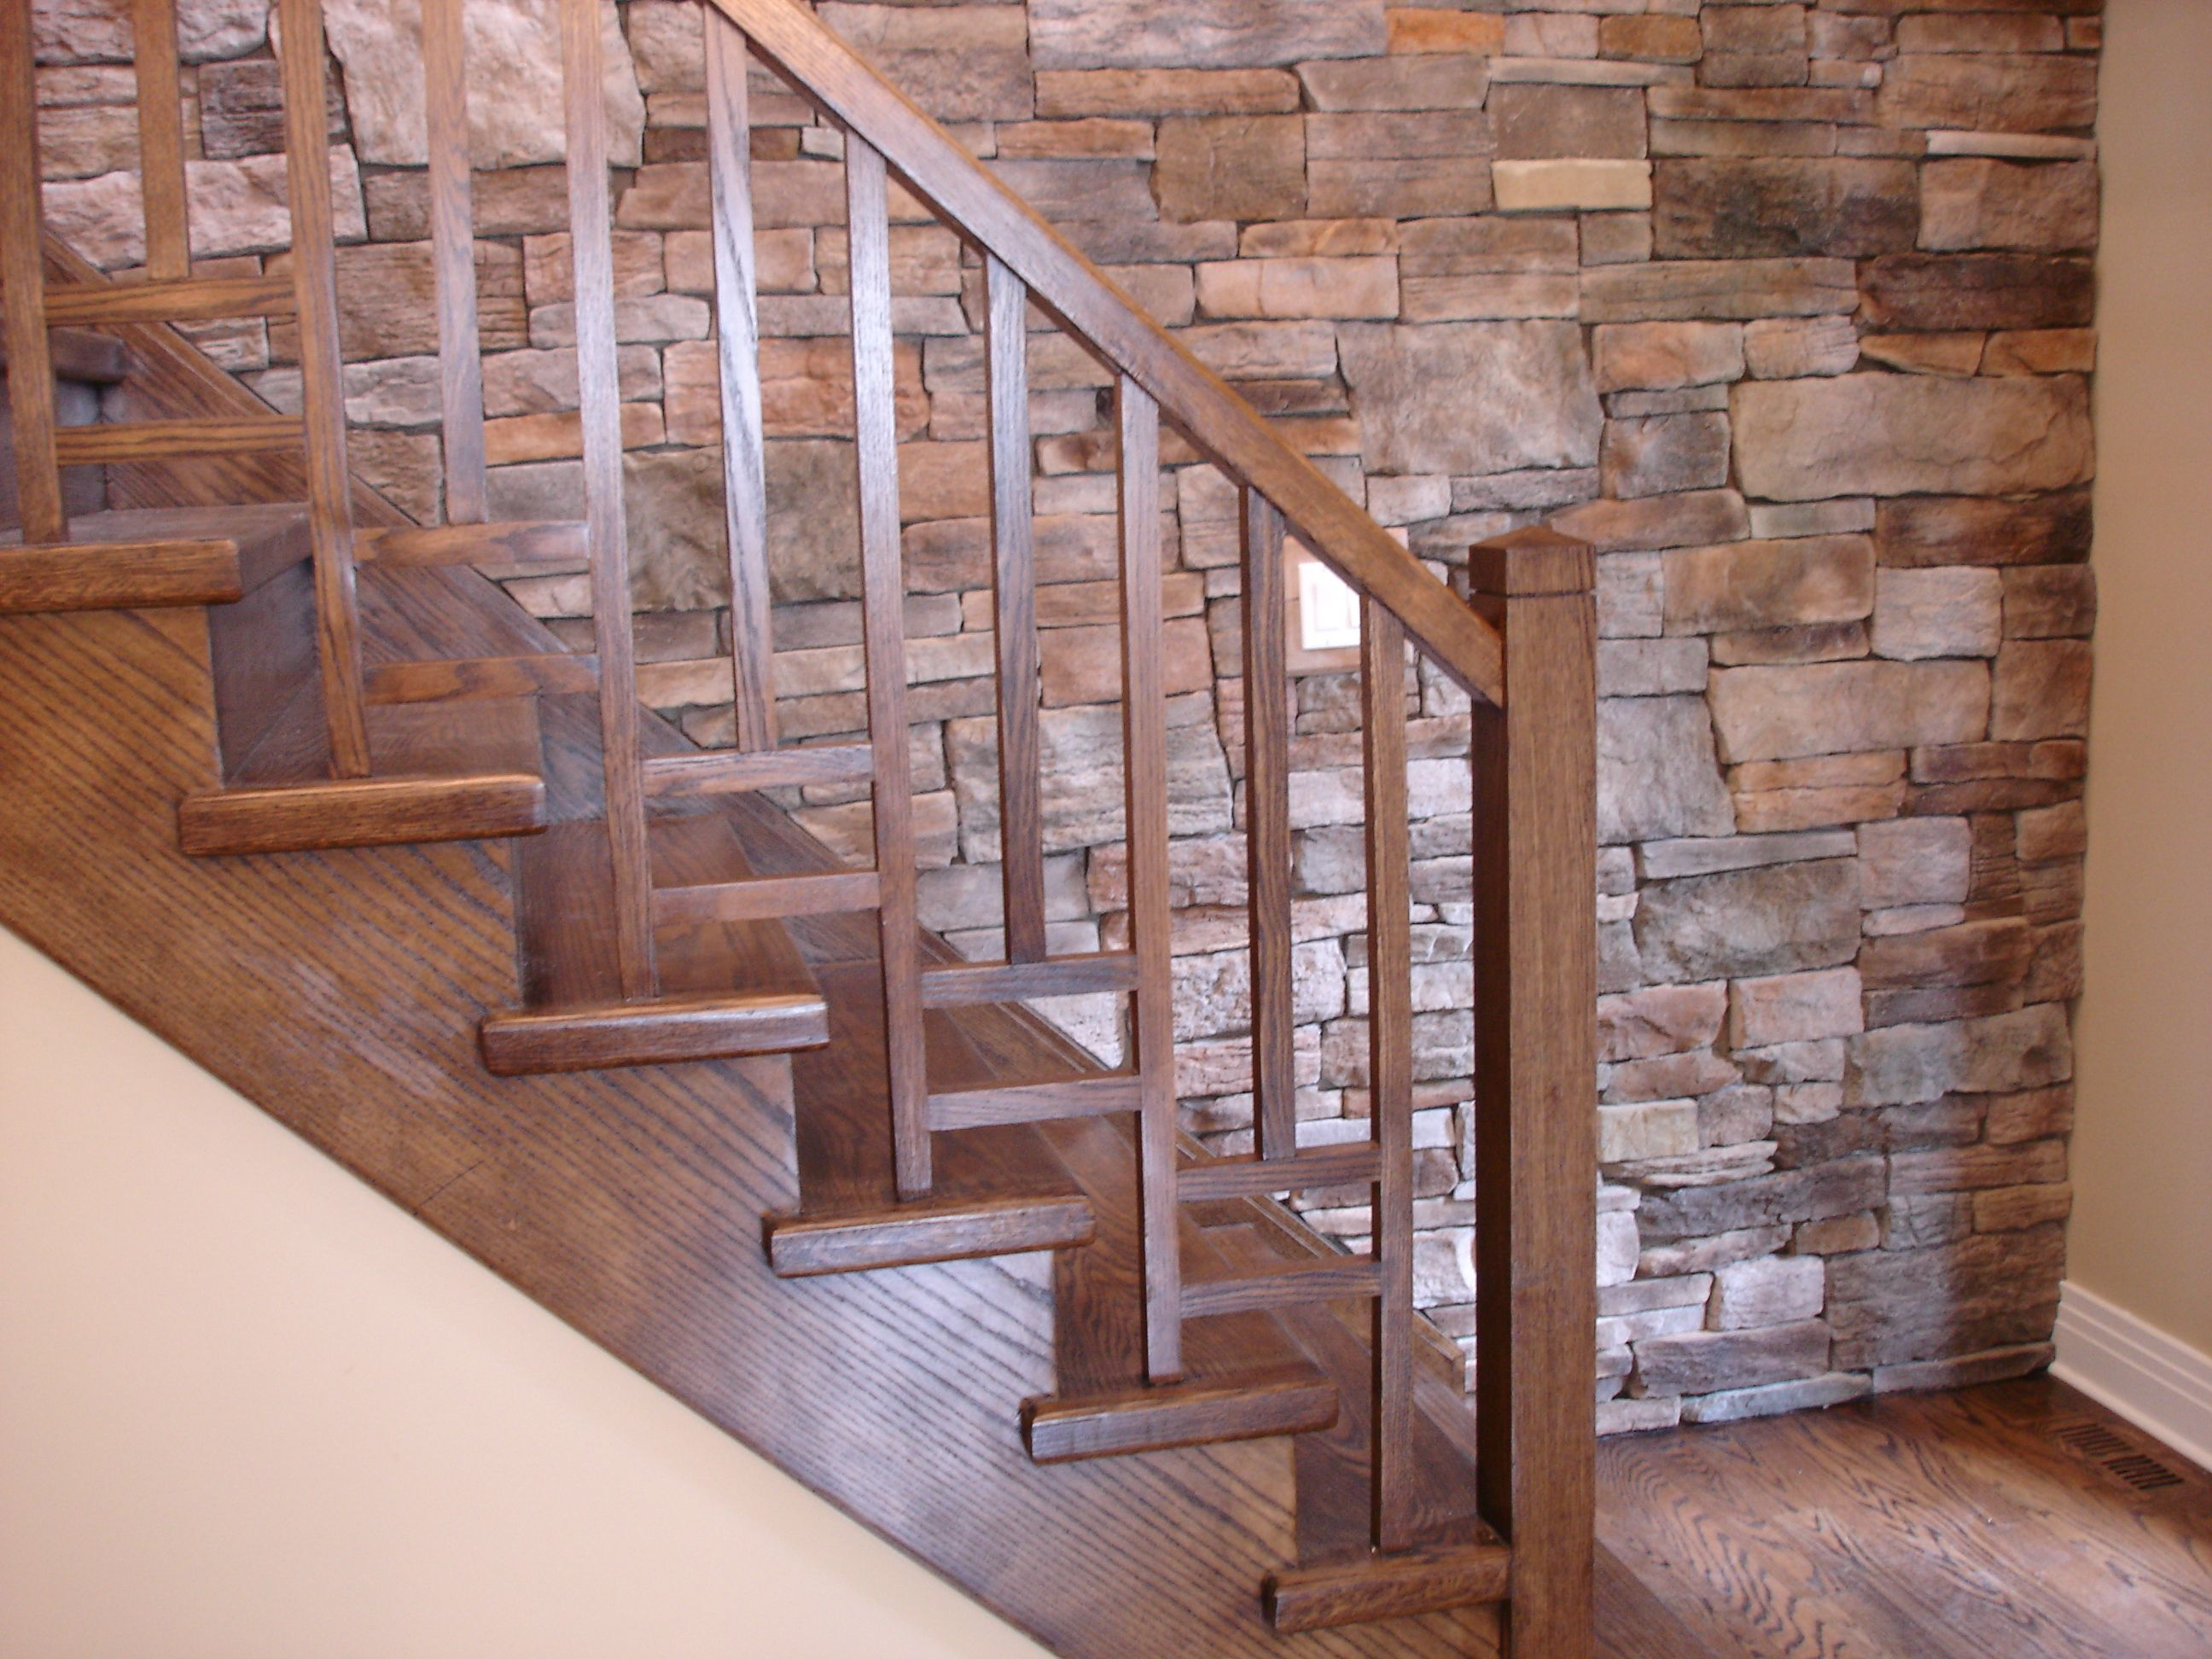 Stair Railing Types Stair Banisters And Railings Ideas | Bannister Rails For Stairs | Pipe | Build Stair | Deck | Outdoor | 5 Step